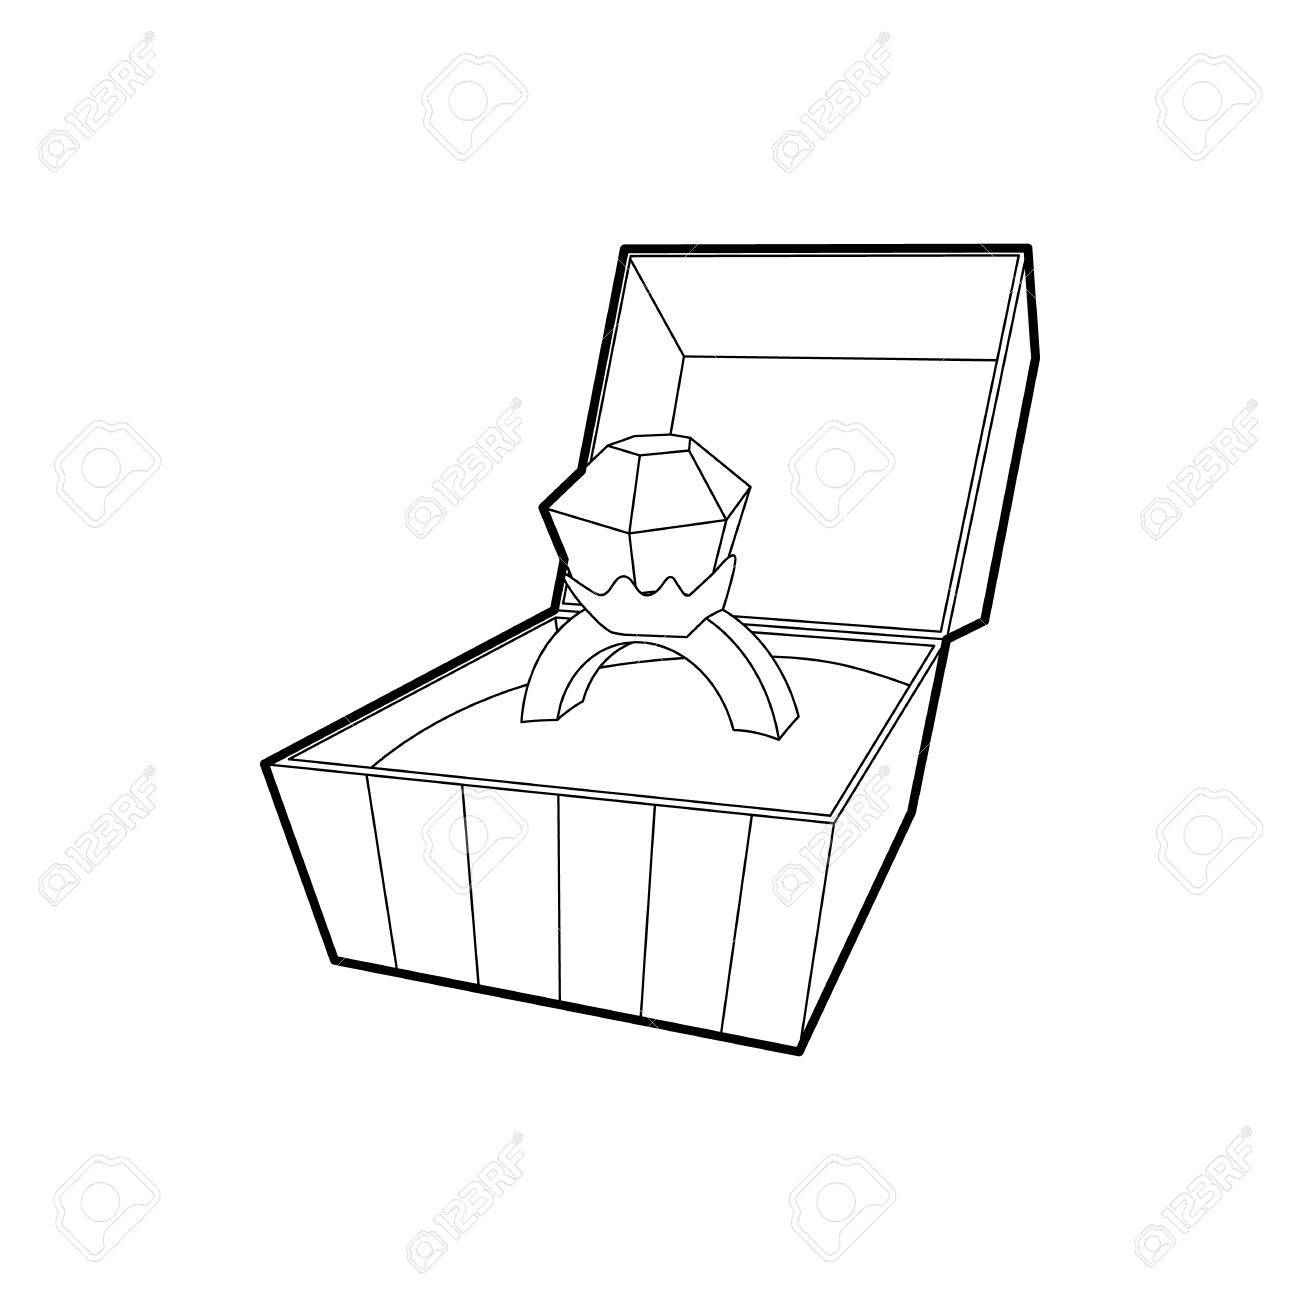 Open at getdrawings com. Box clipart line drawing